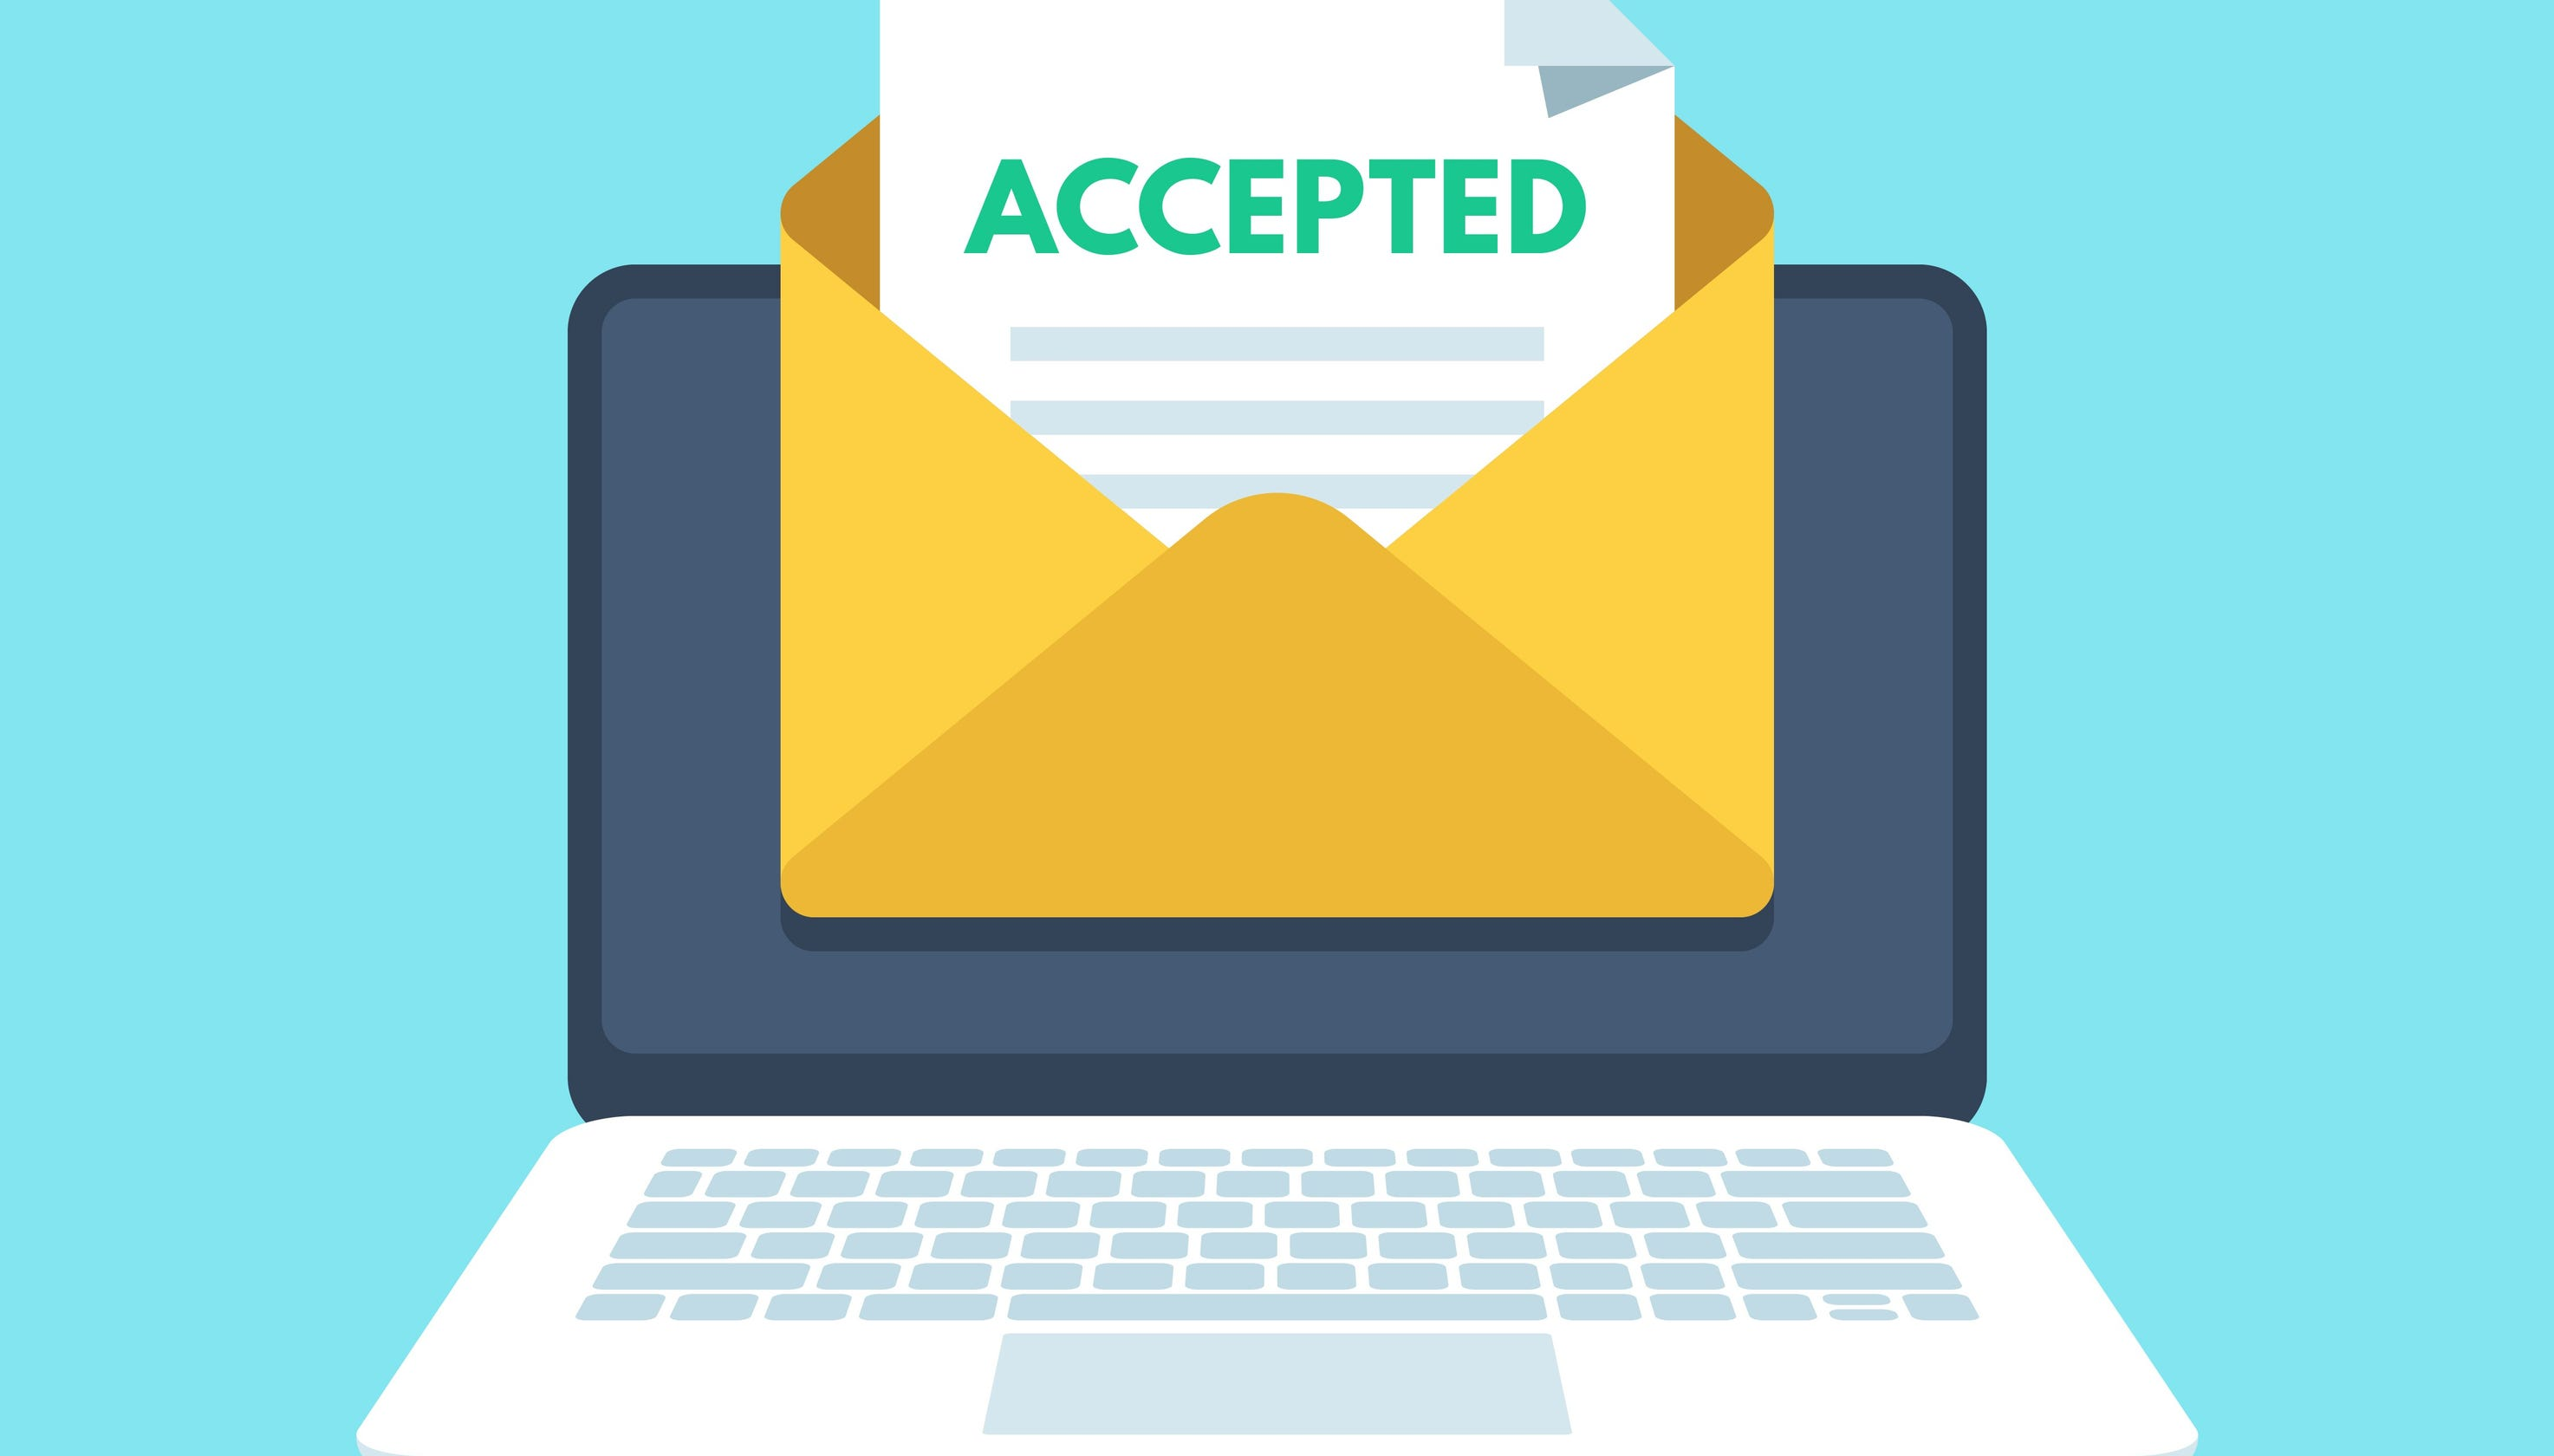 bfee97a7-15ca-4917-aa3c-3a23fa1b9ec4-college_accepted Salutation For An Application Letter on what is proper, essay cover, art teachers, french closing, several people,